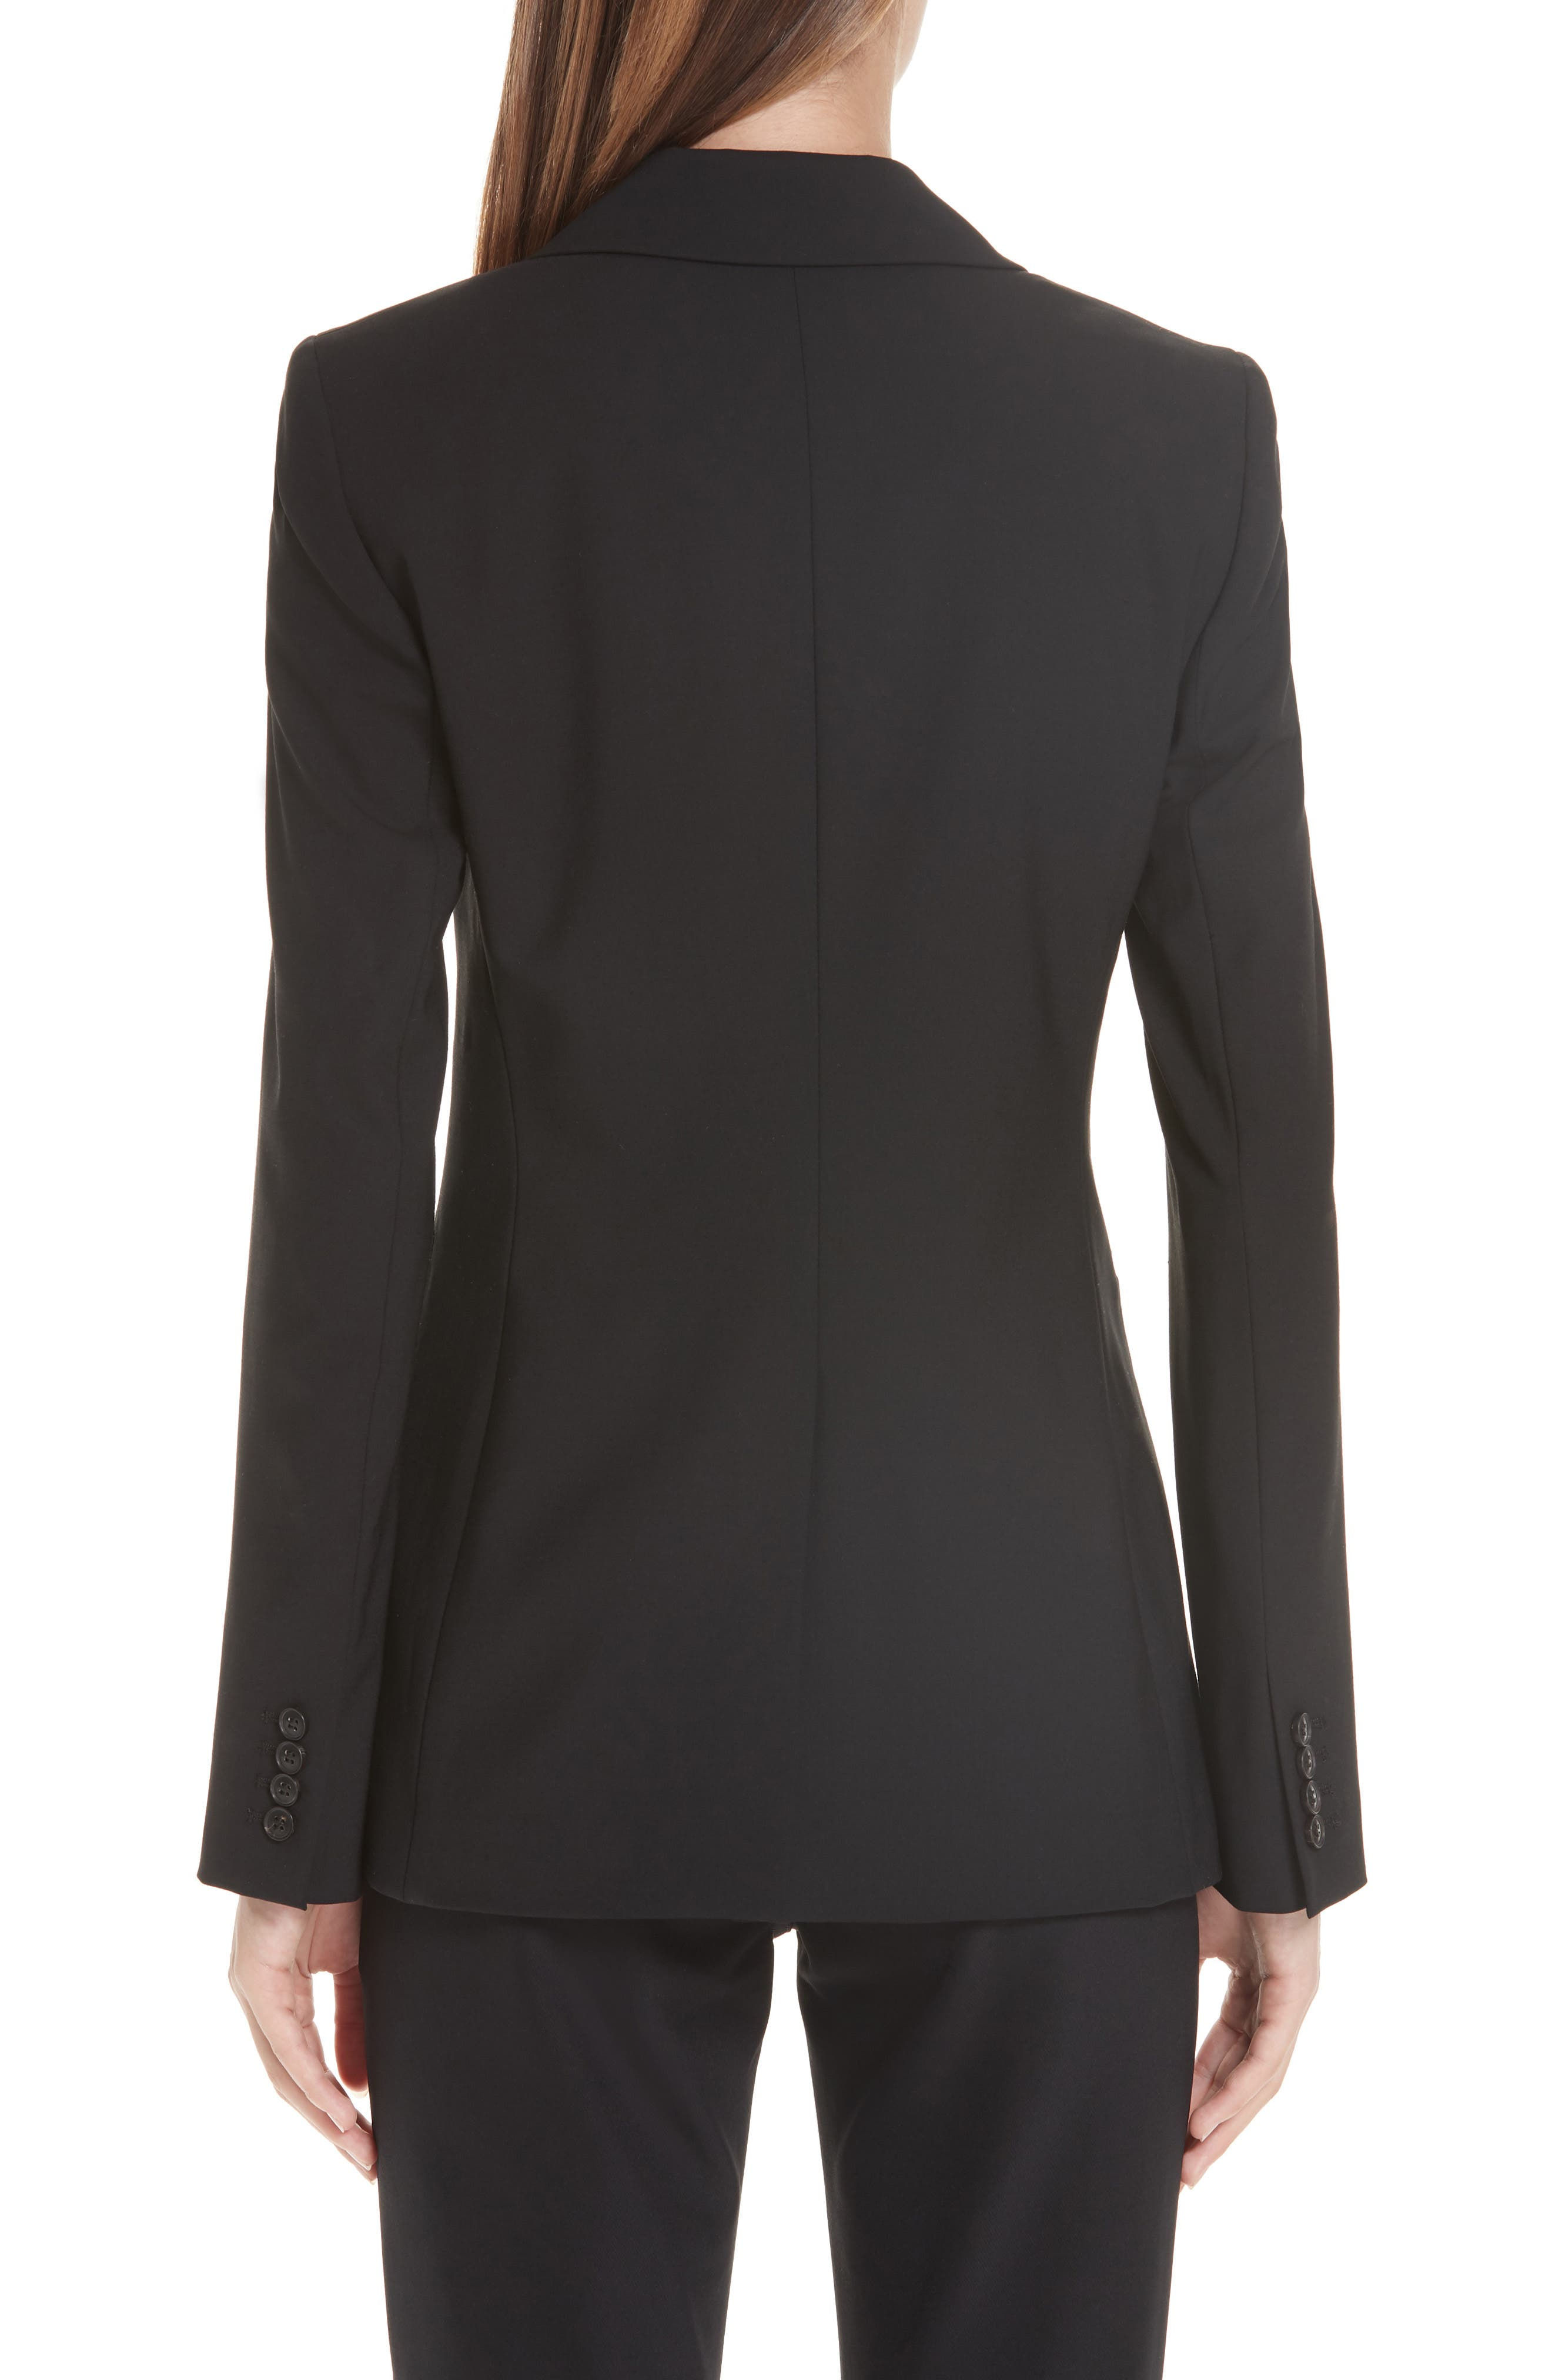 LAFAYETTE 148 NEW YORK, Charice Stretch Wool Jacket, Alternate thumbnail 2, color, BLACK